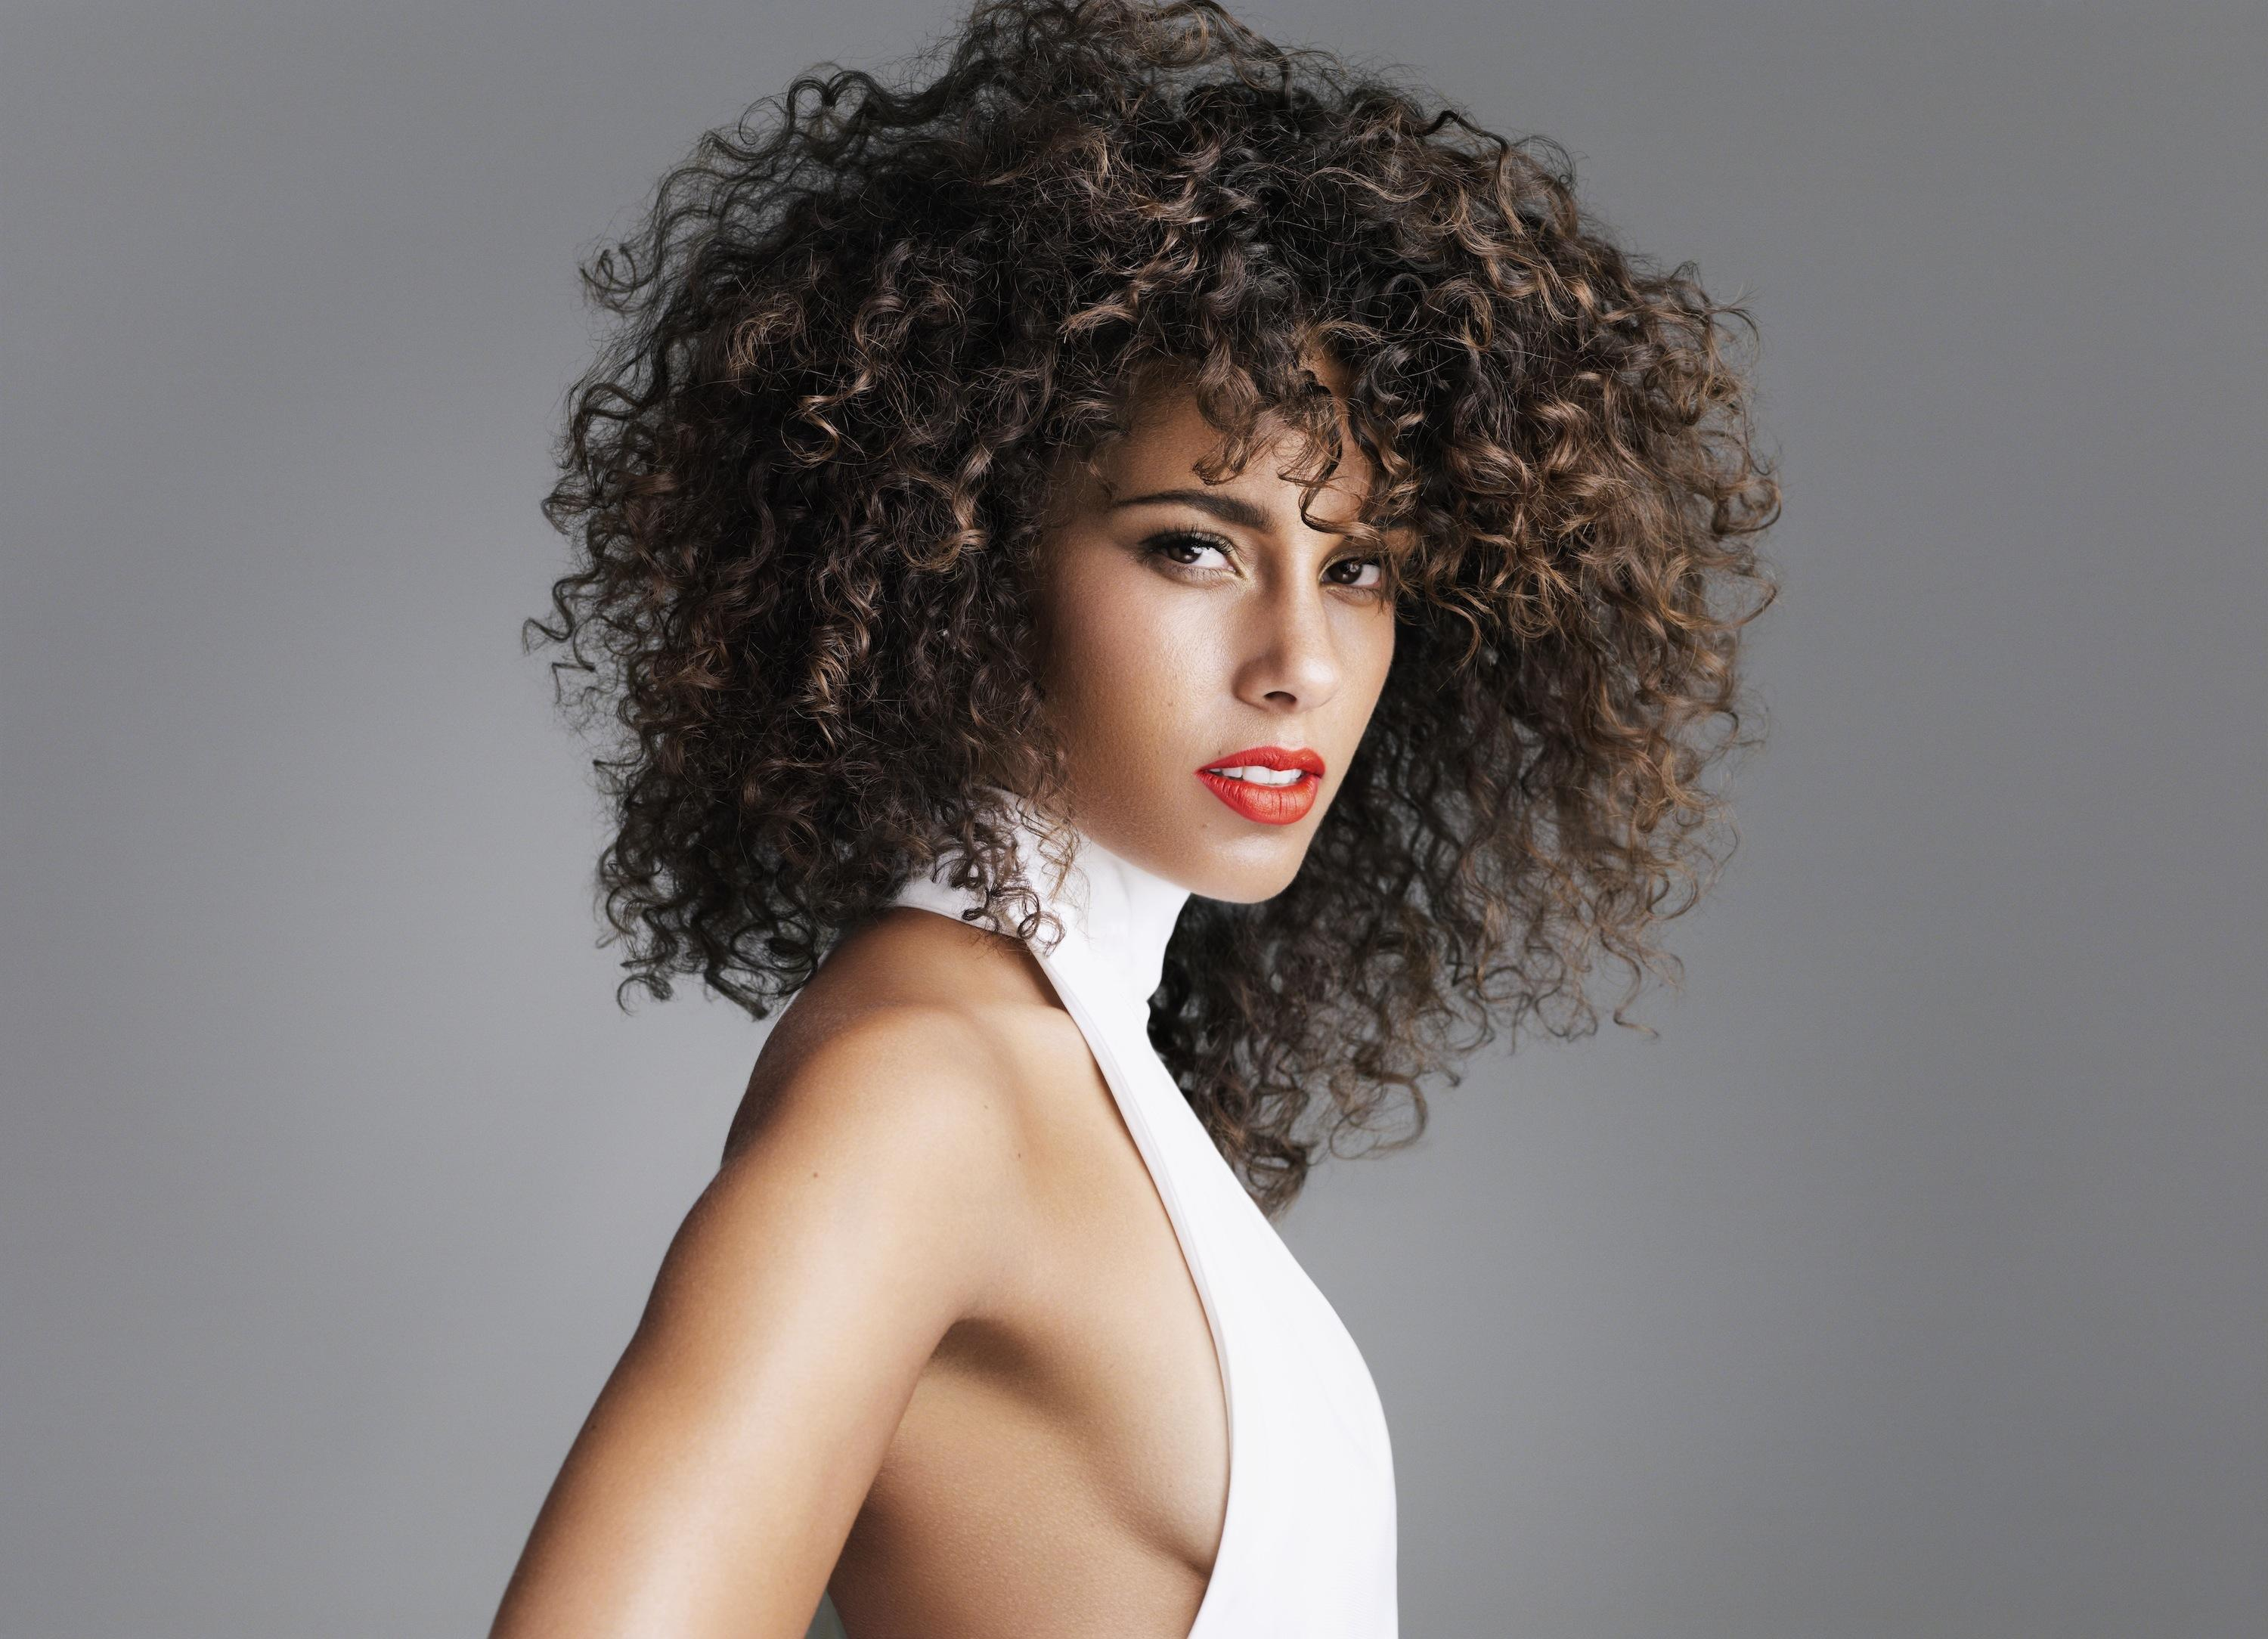 Peachy 9 Alicia Keys Hairstyles You Can Totally Do Yourself Short Hairstyles Gunalazisus